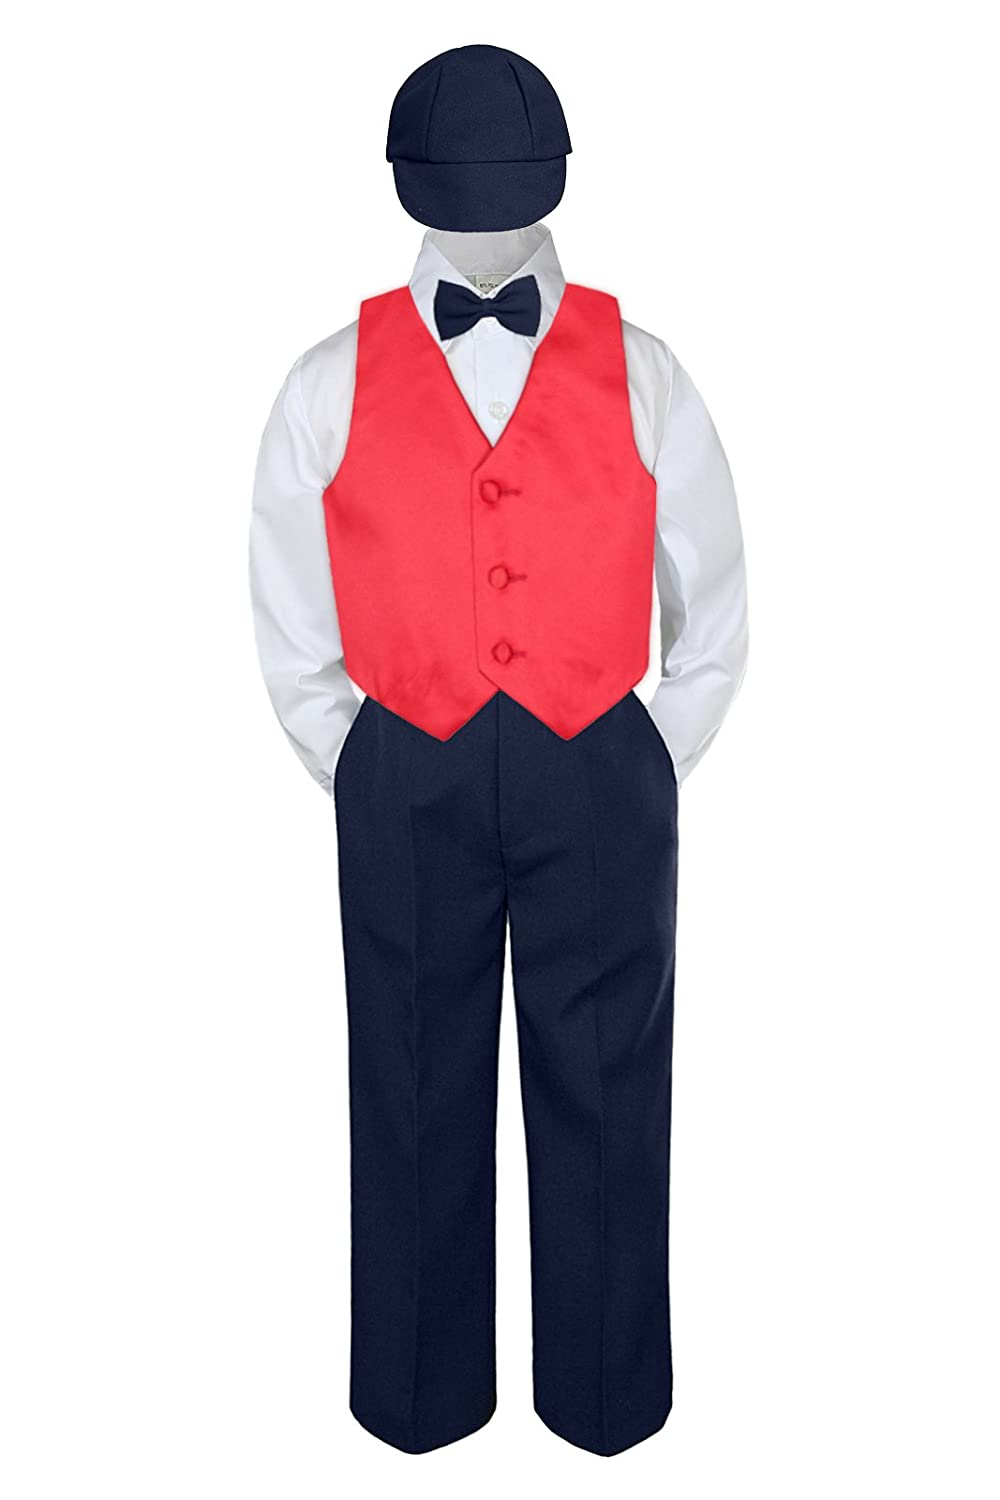 5pc Baby Toddler Kid Boys Navy Pants Hat Bow Tie Purple Vest Suits Set (6)